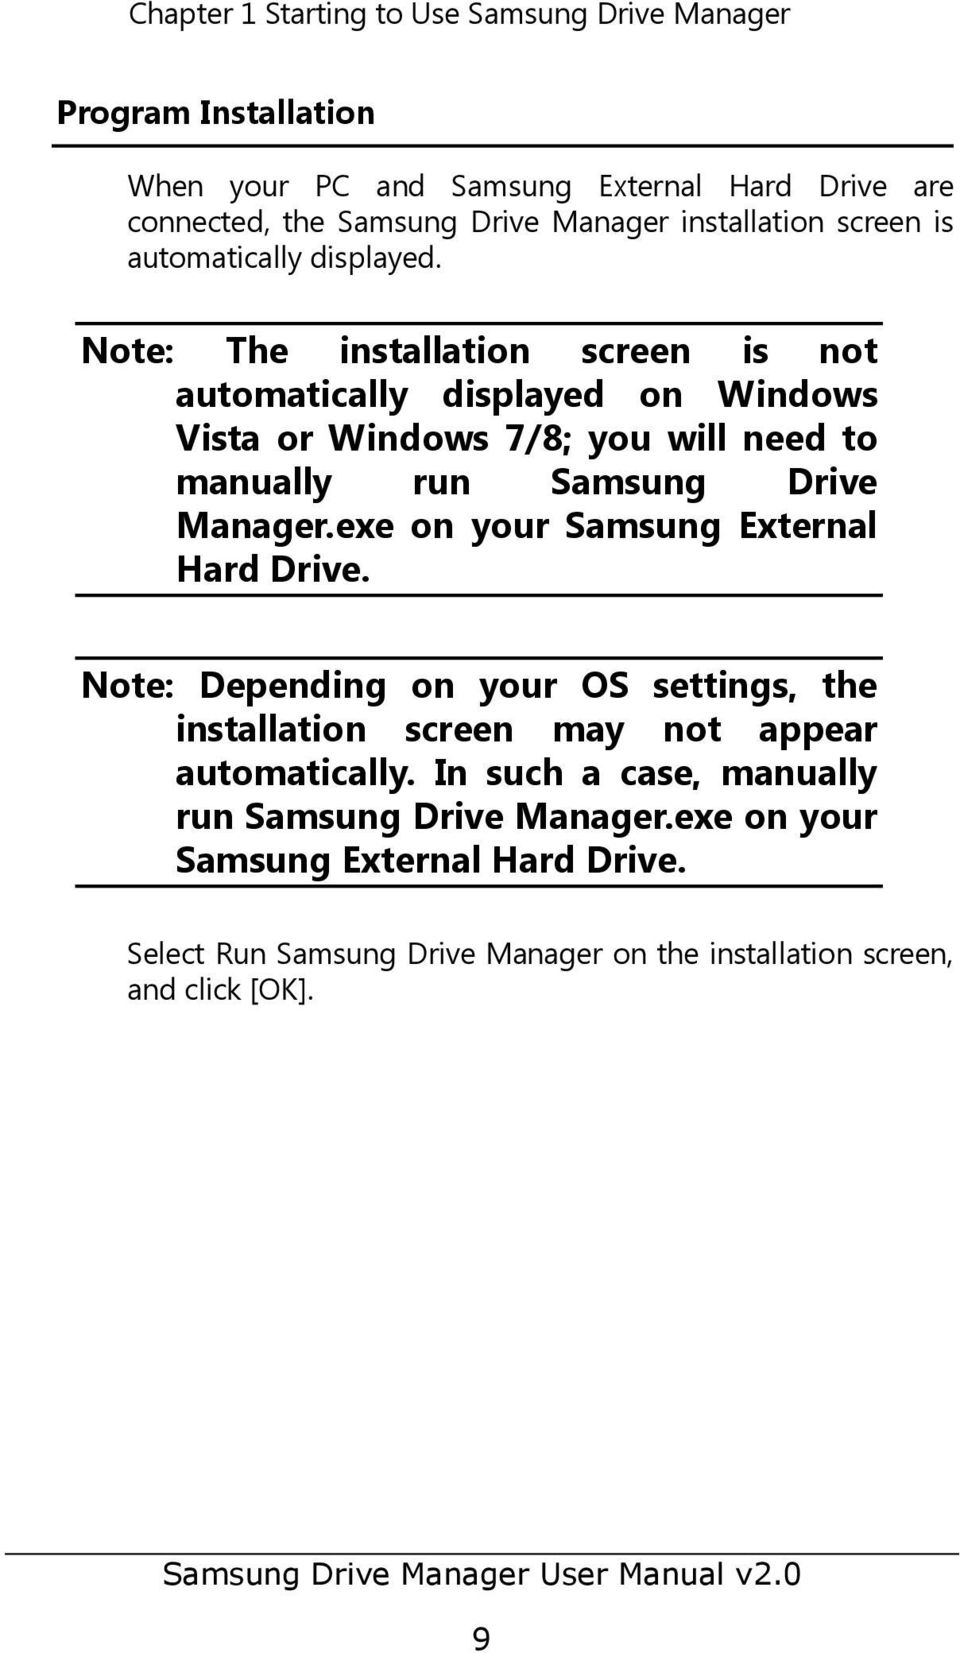 Note: The installation screen is not automatically displayed on Windows Vista or Windows 7/8; you will need to manually run Samsung Drive Manager.